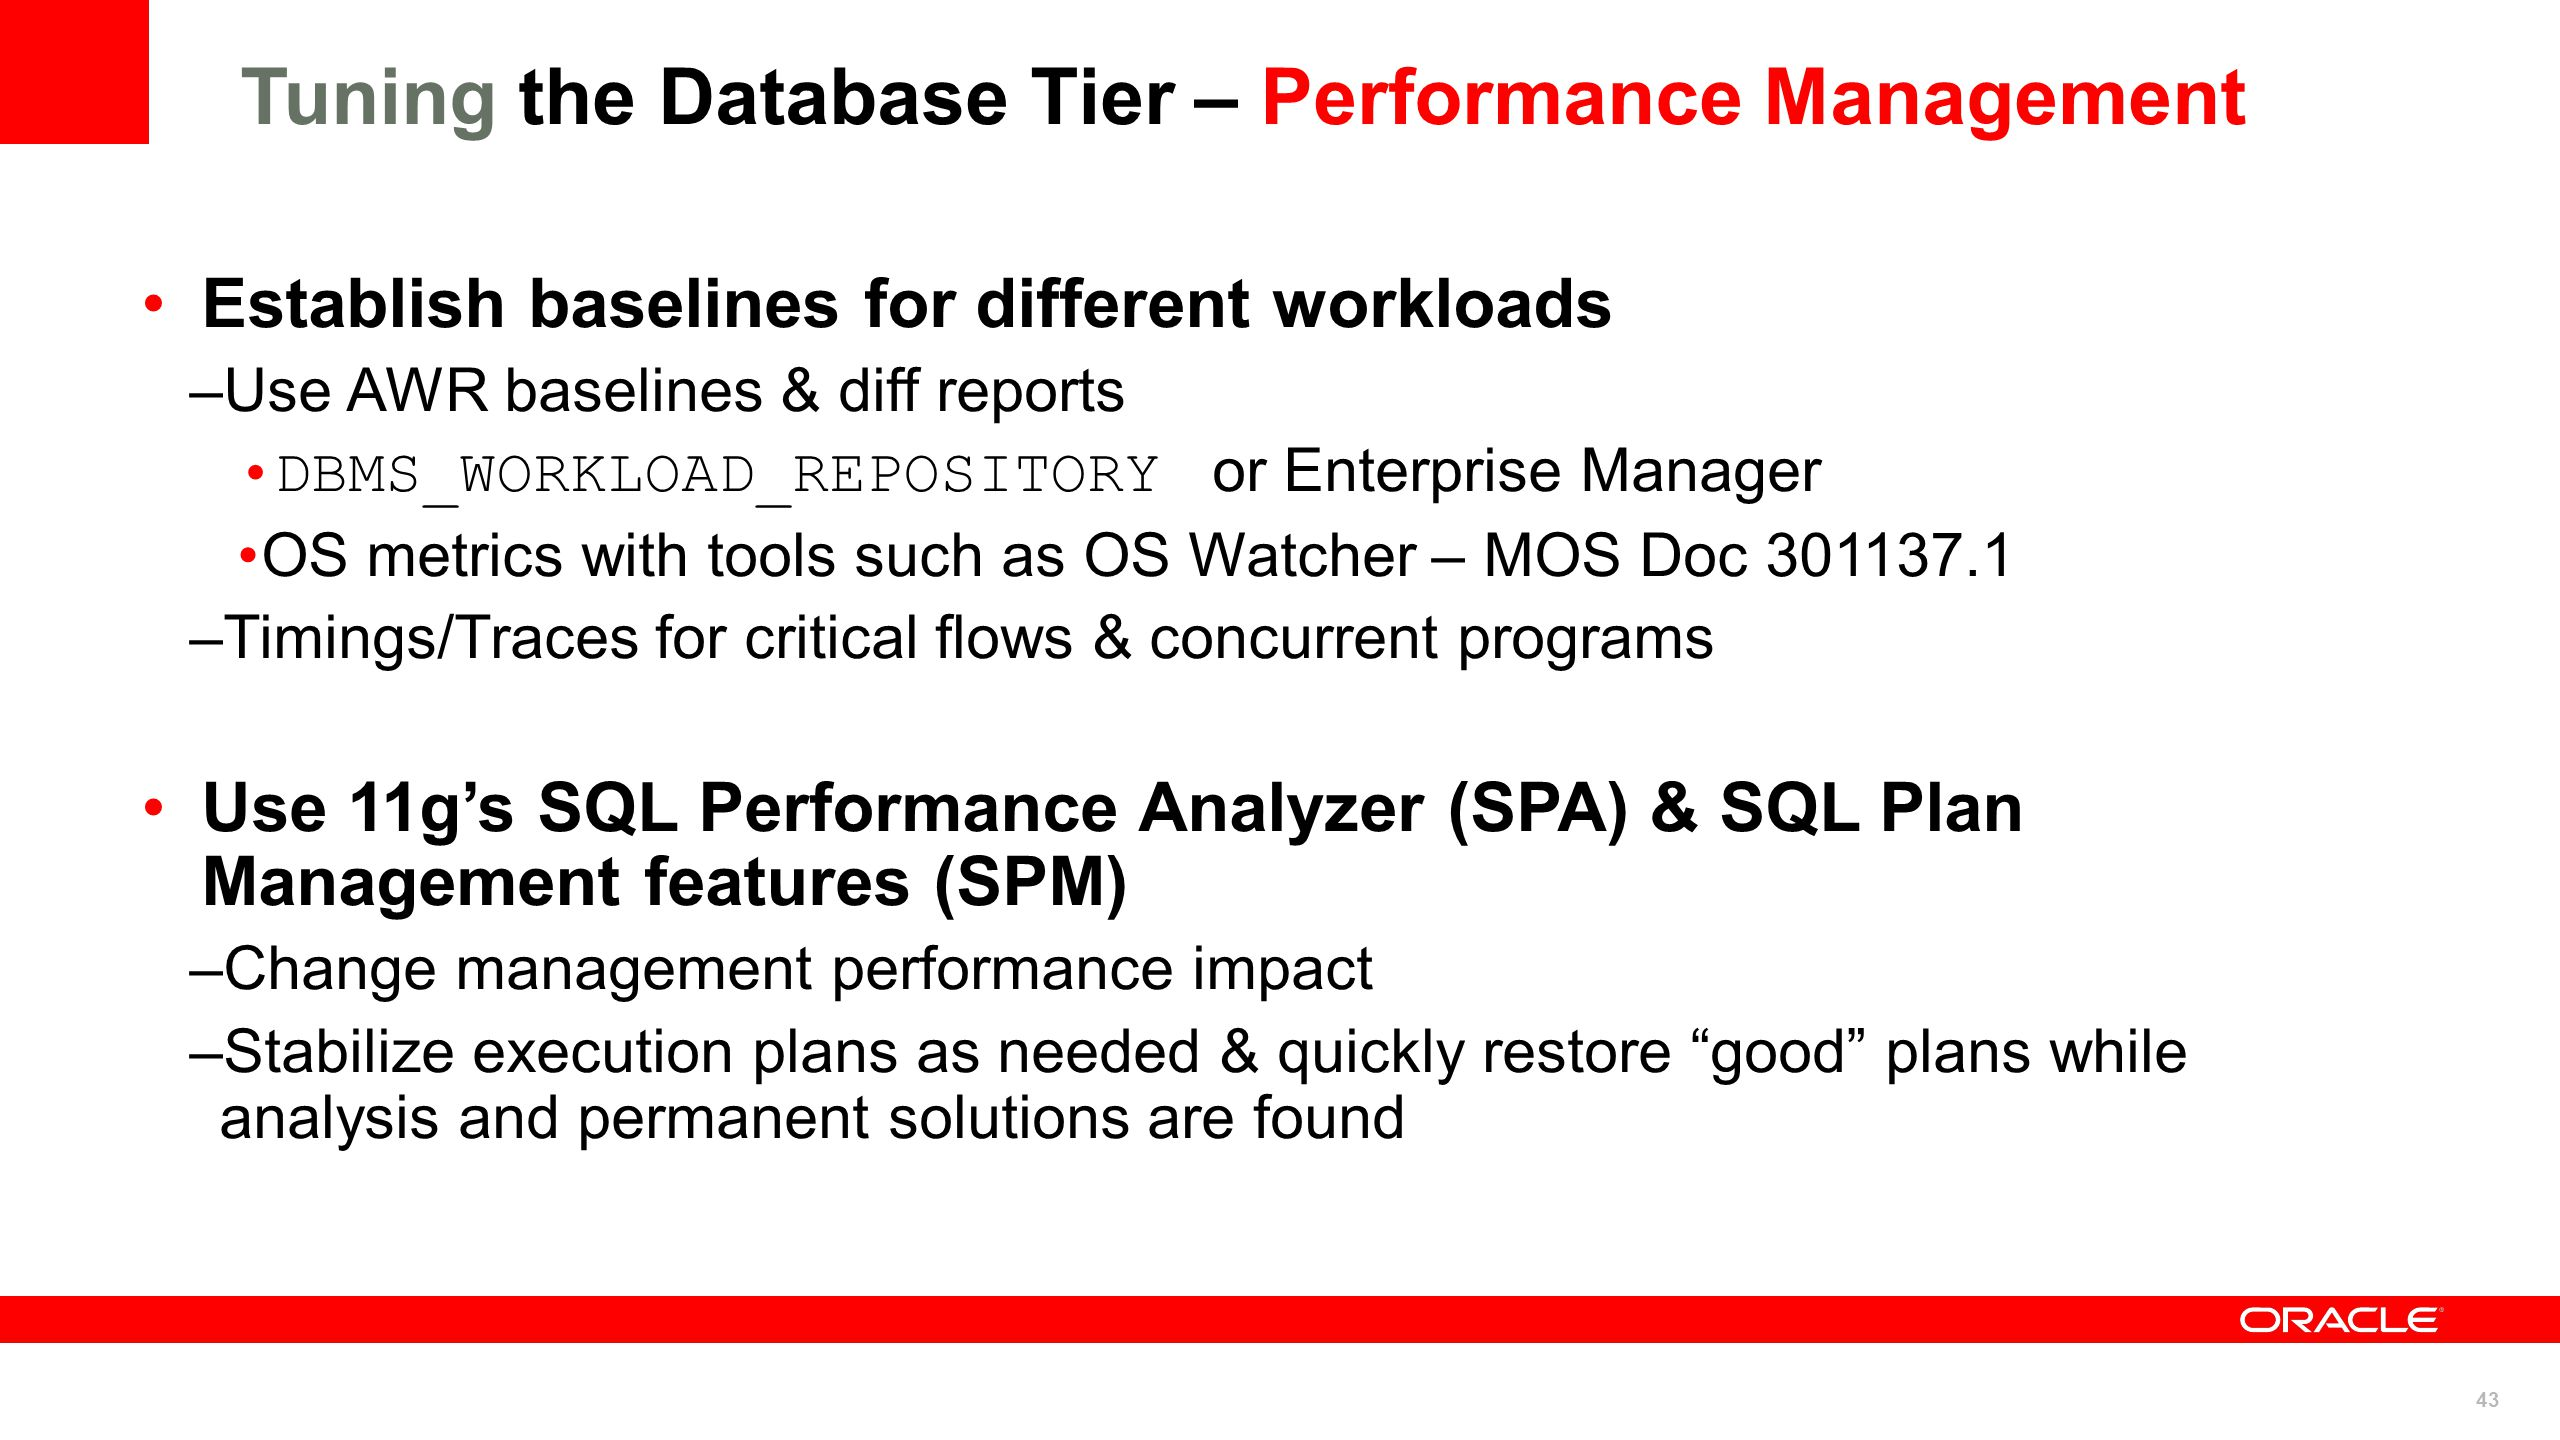 43 Tuning the Database Tier – Performance Management Establish baselines for different workloads –Use AWR baselines & diff reports DBMS_WORKLOAD_REPOS